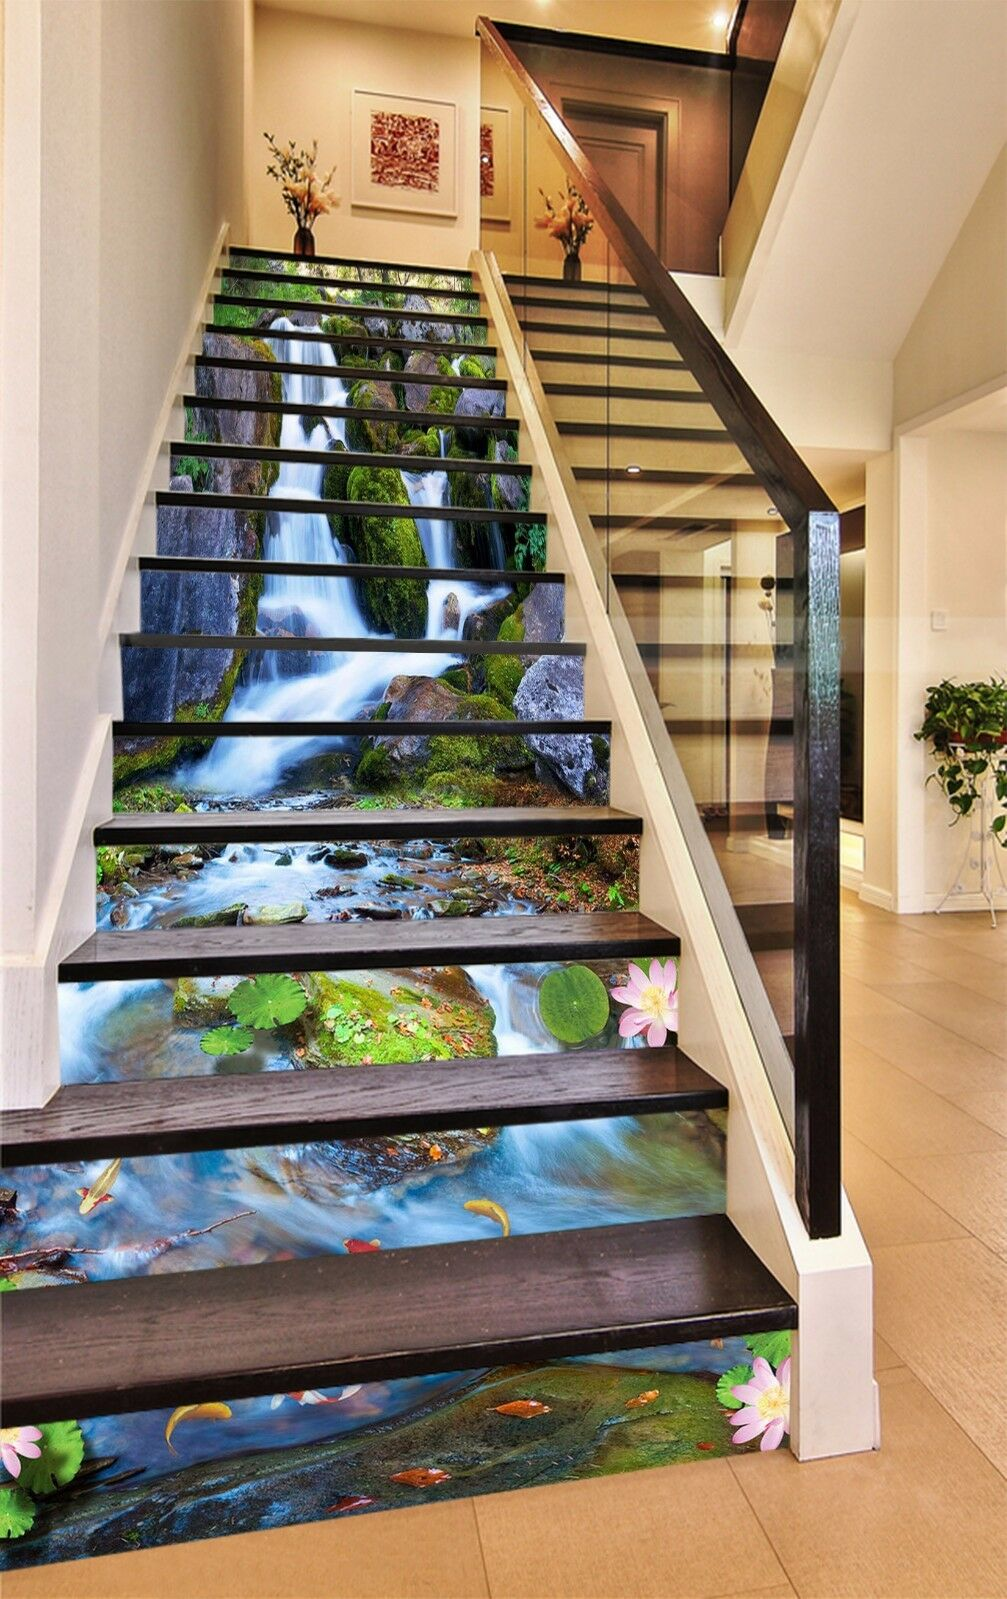 3D Fish Pond  583 Stair Risers Decoration Photo Mural Vinyl Decal Wallpaper AU